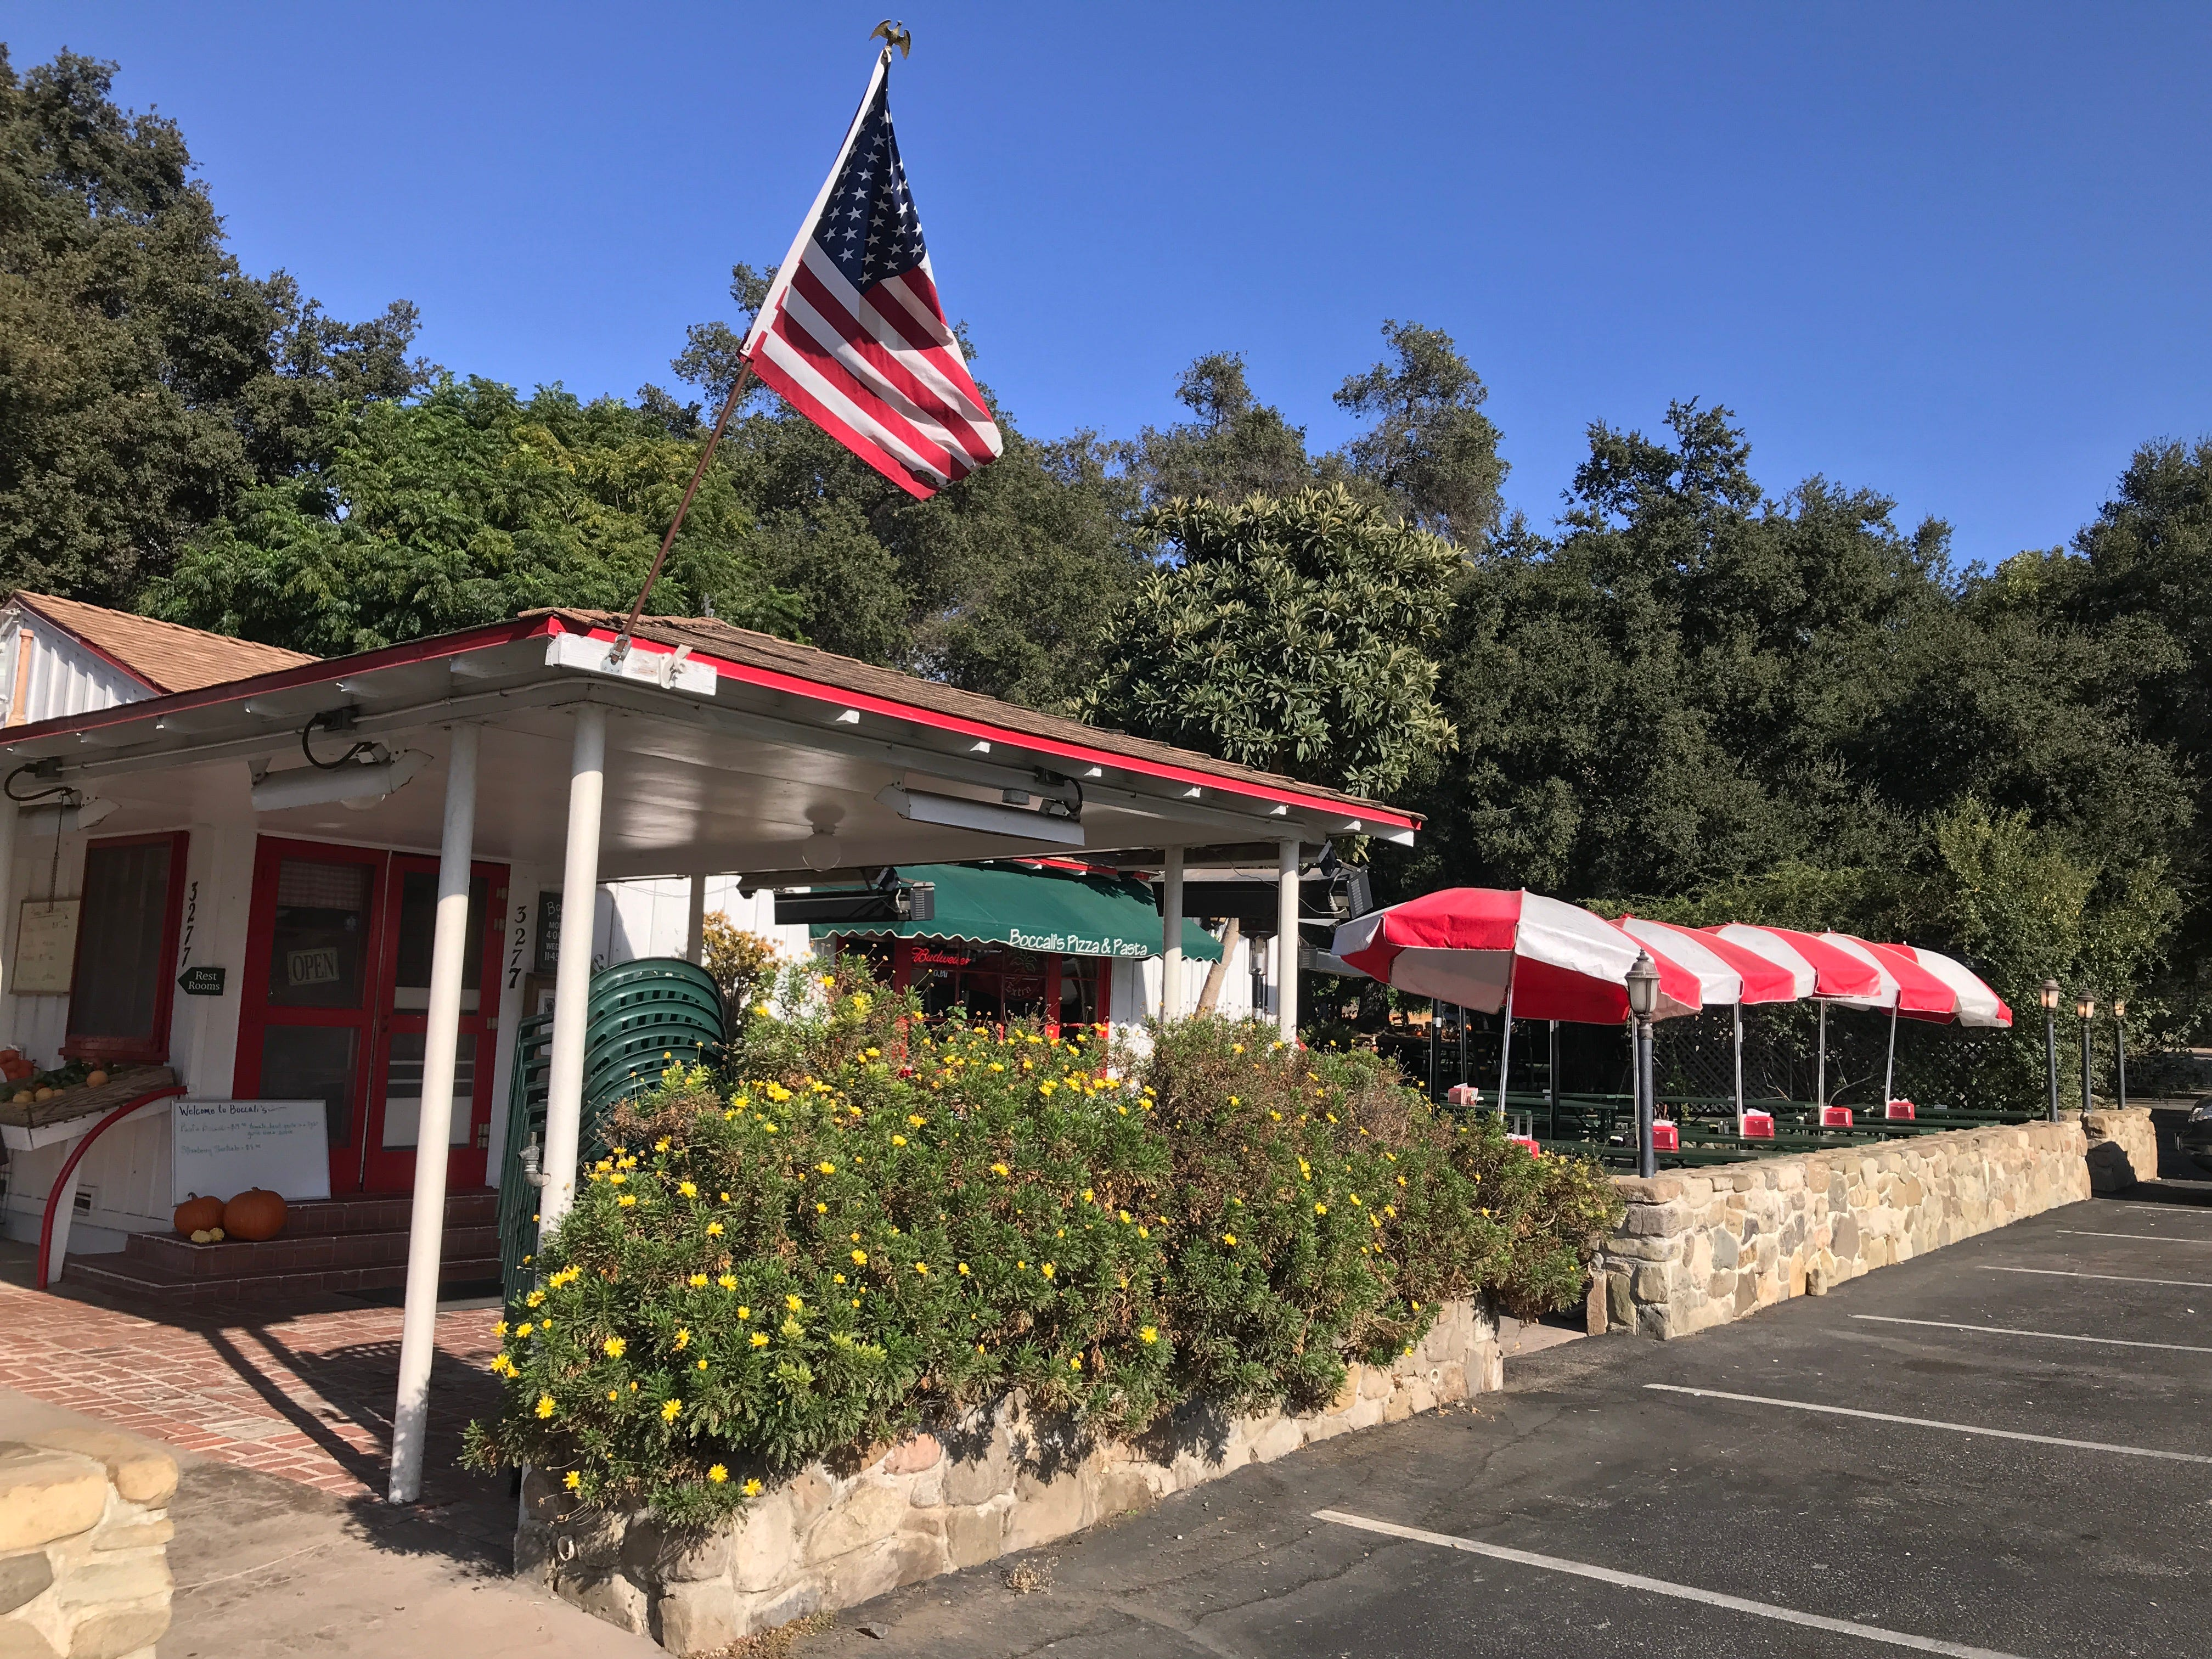 Boccali's Pizza & Pasta Restaurant in Ojai is open for business. It will have a pumpkin patch this year, but no haunted hayride.